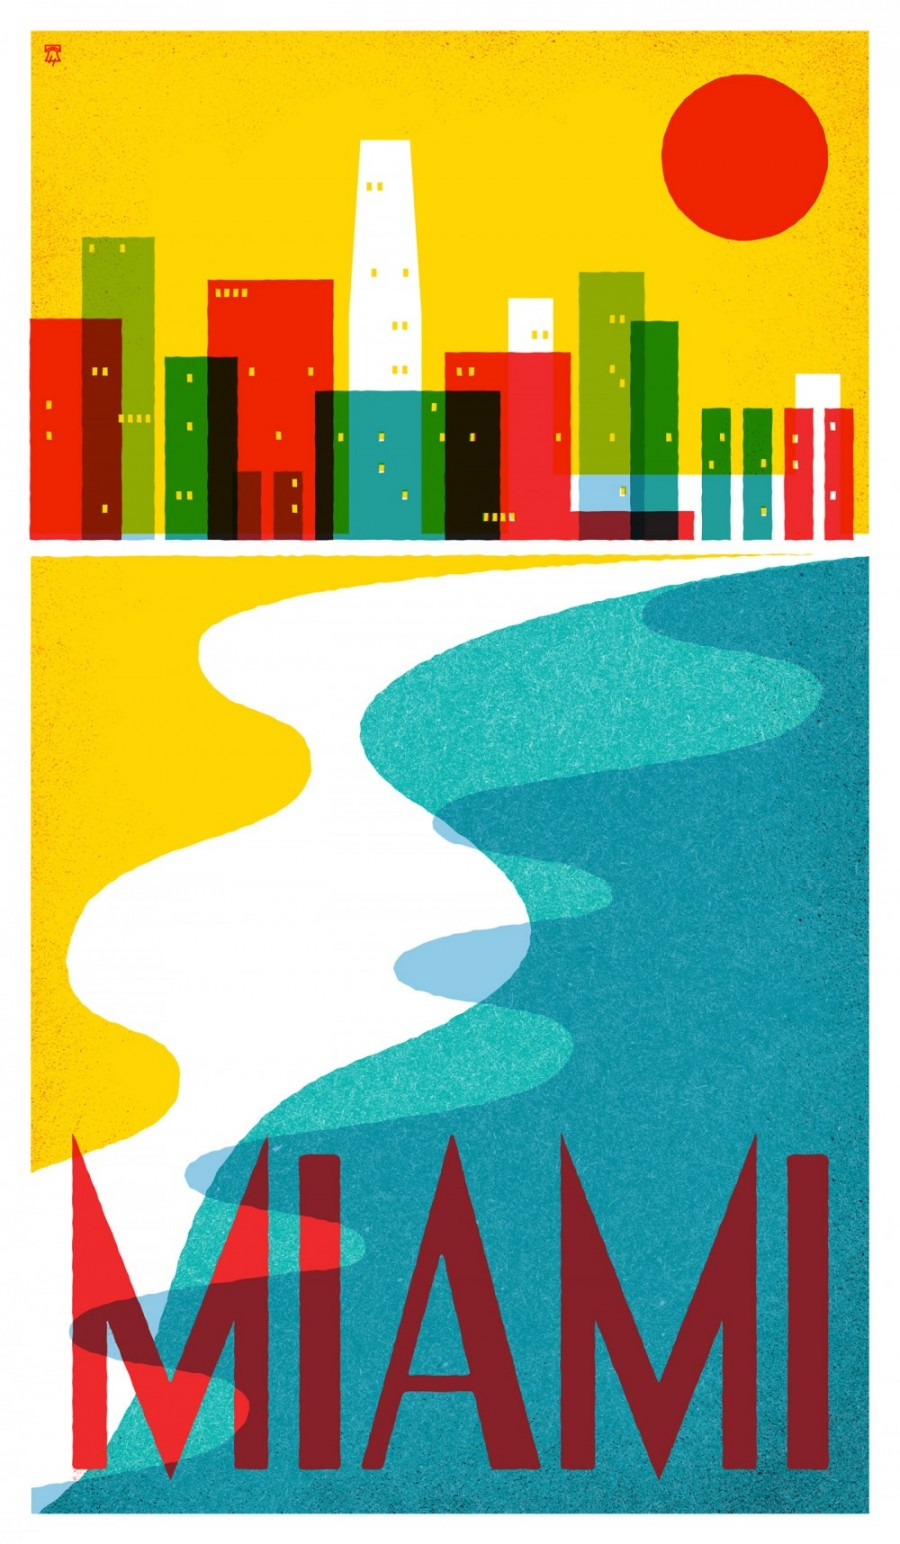 Miami, Florida - Travel Poster Series - The Heads of State